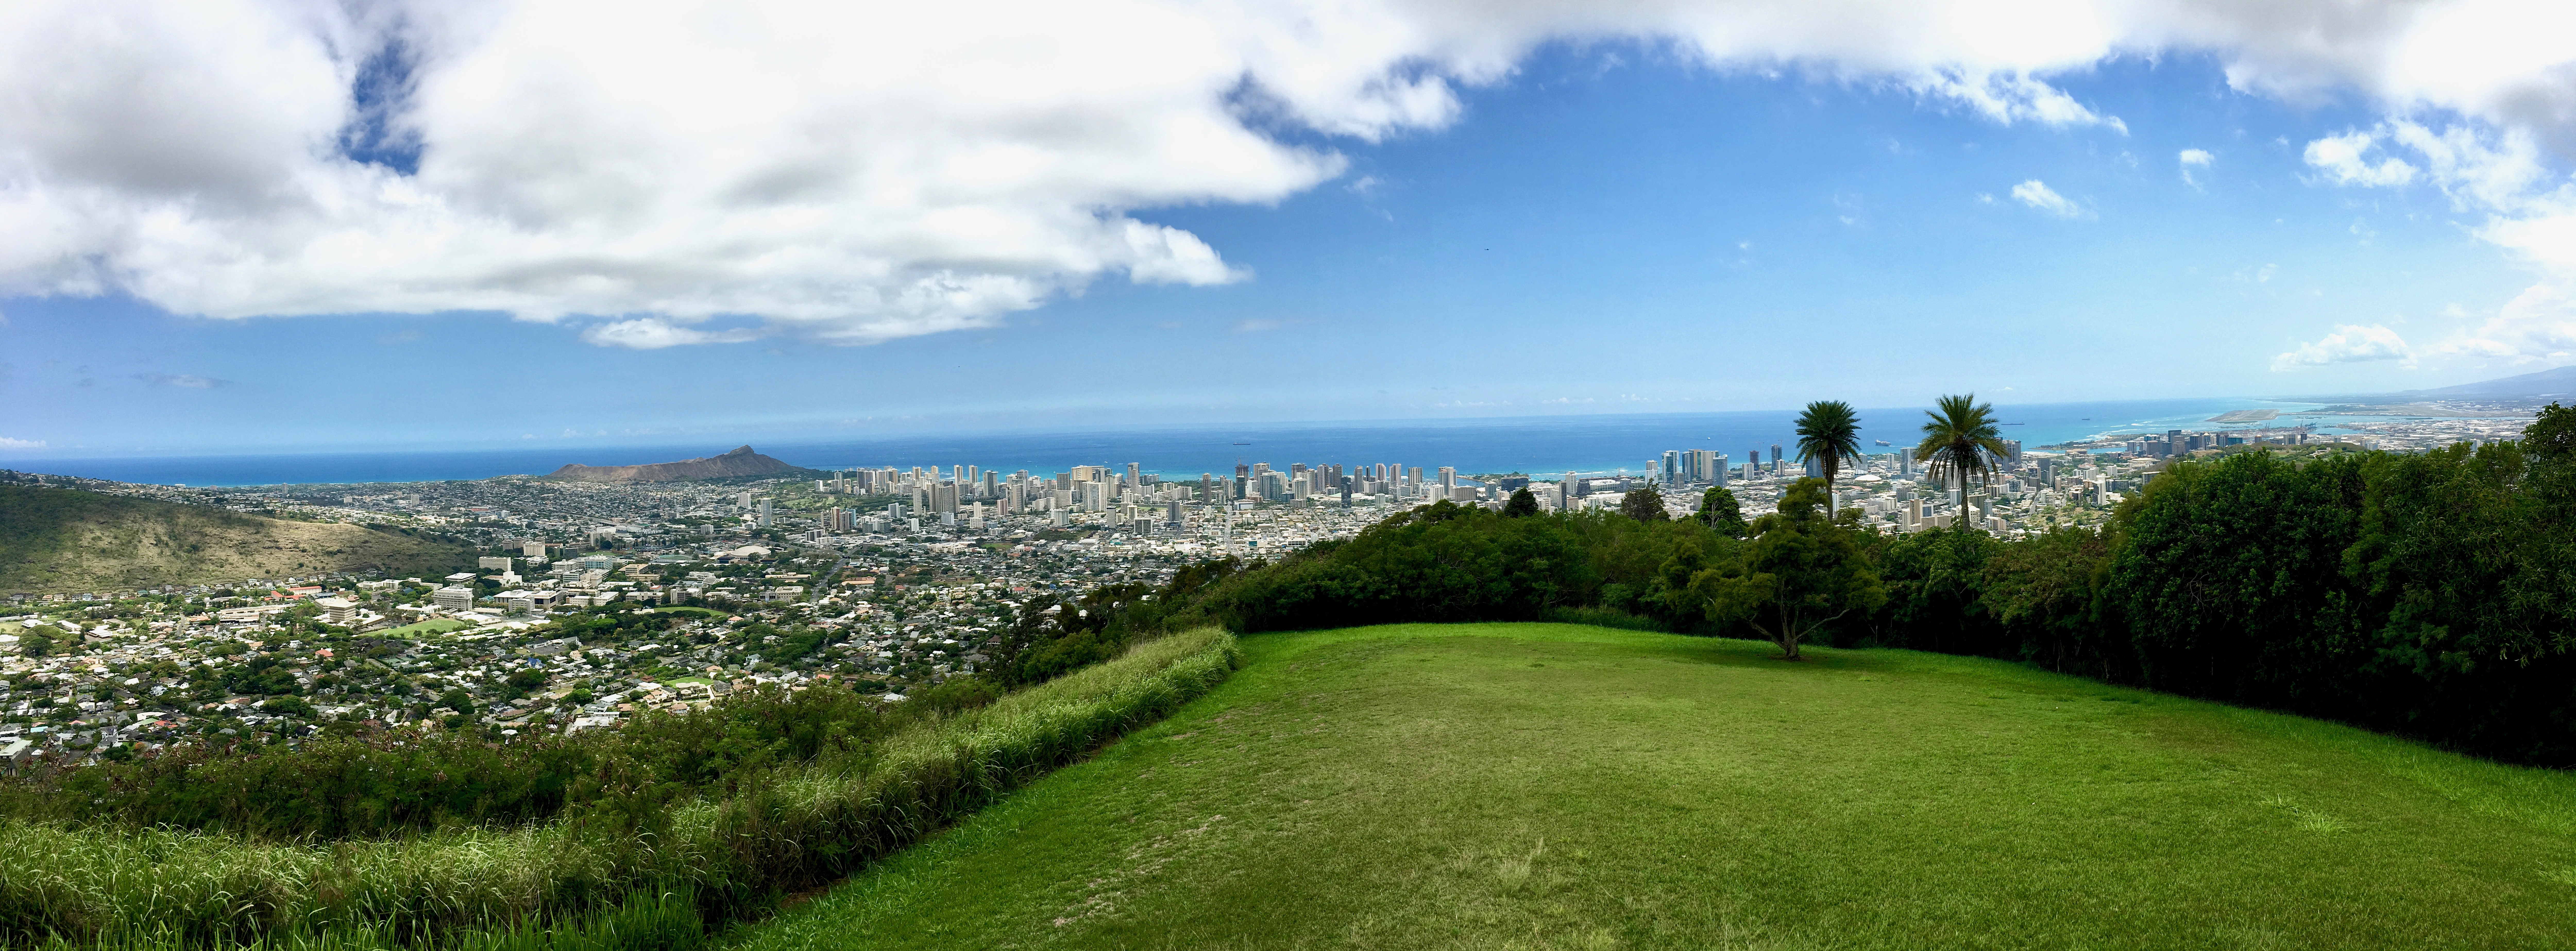 Scenic view points in oahu, best things to do in oahu, most scenic spots in Oahu, most scenic spots in Honolulu, must-see attractions in Honolulu, must-see attractions in Oahu